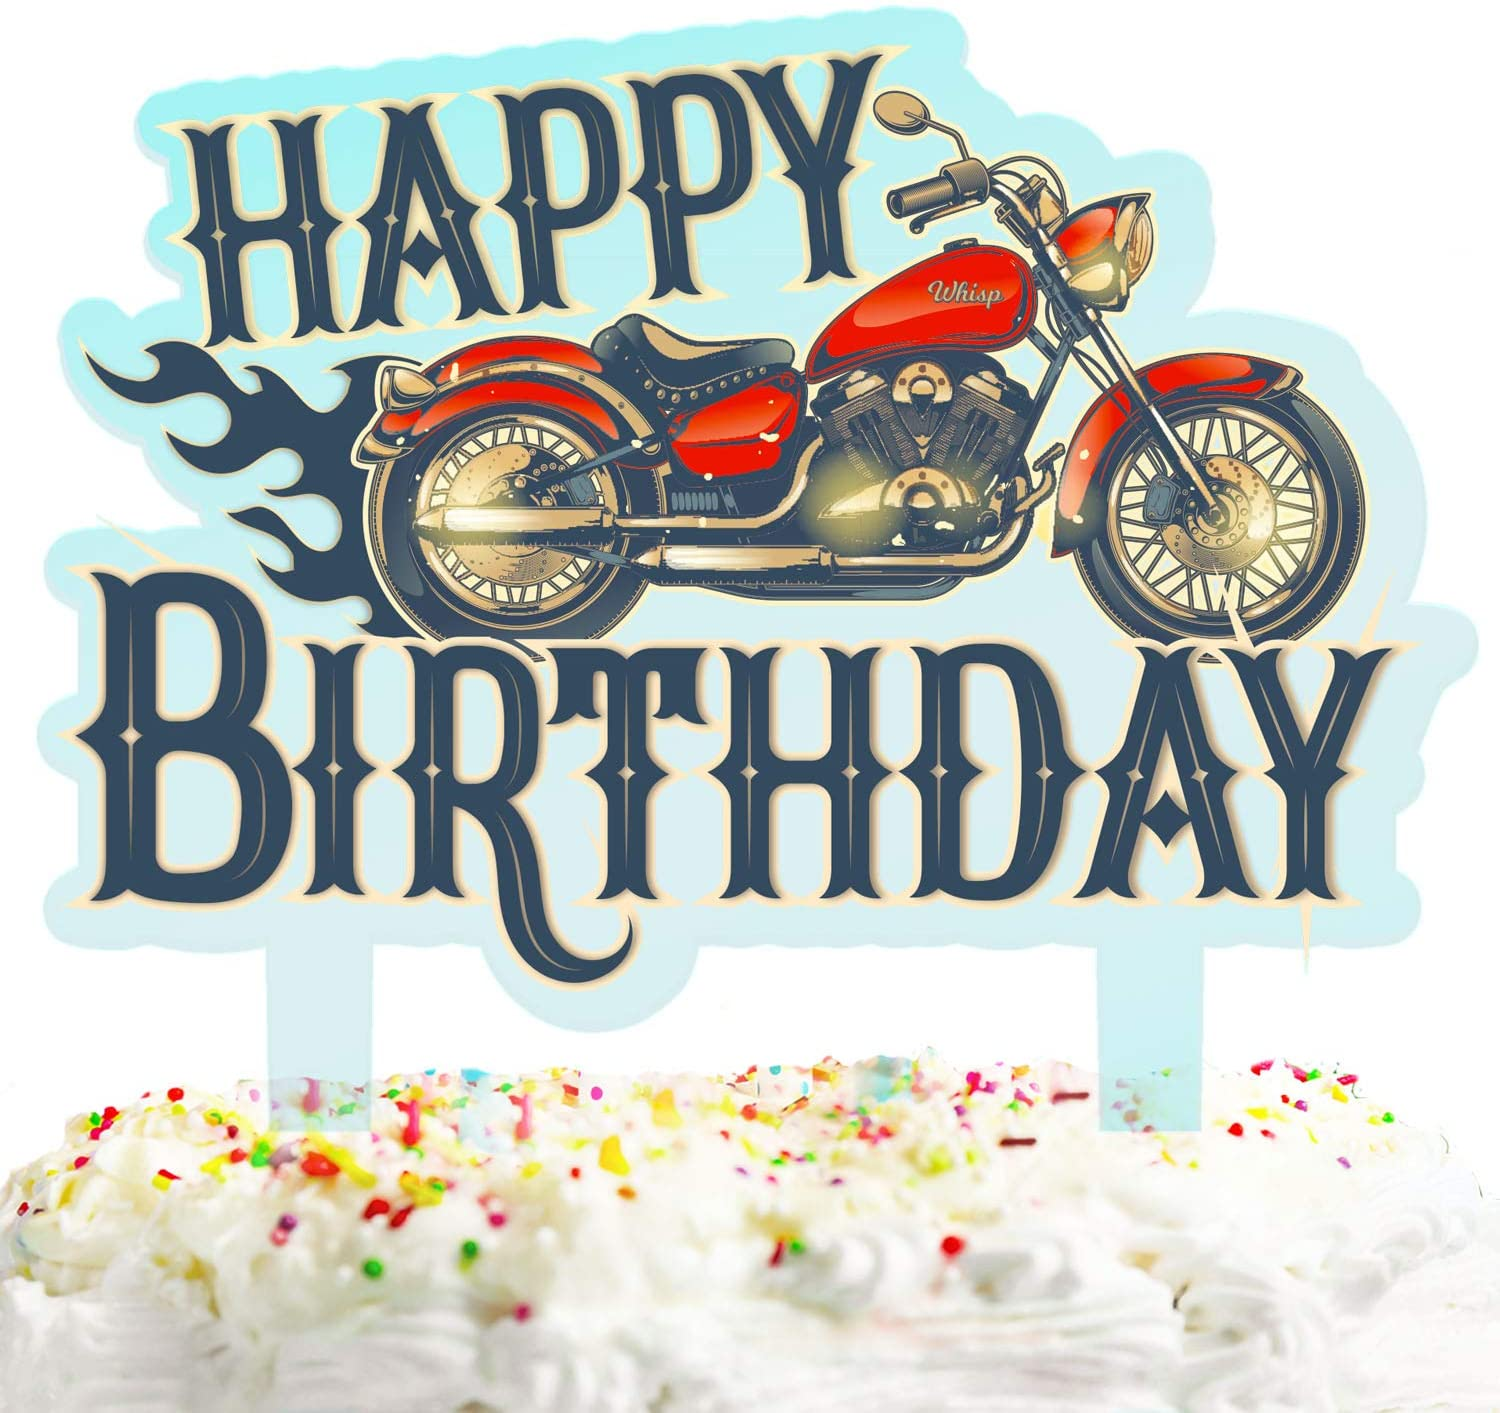 Motorbike Happy Birthday Cake Topper Decorations With Motorcycle Rider For Wheels Stag Theme Picks For Racing Bicycle Party Decor Supplies Walmart Com Walmart Com